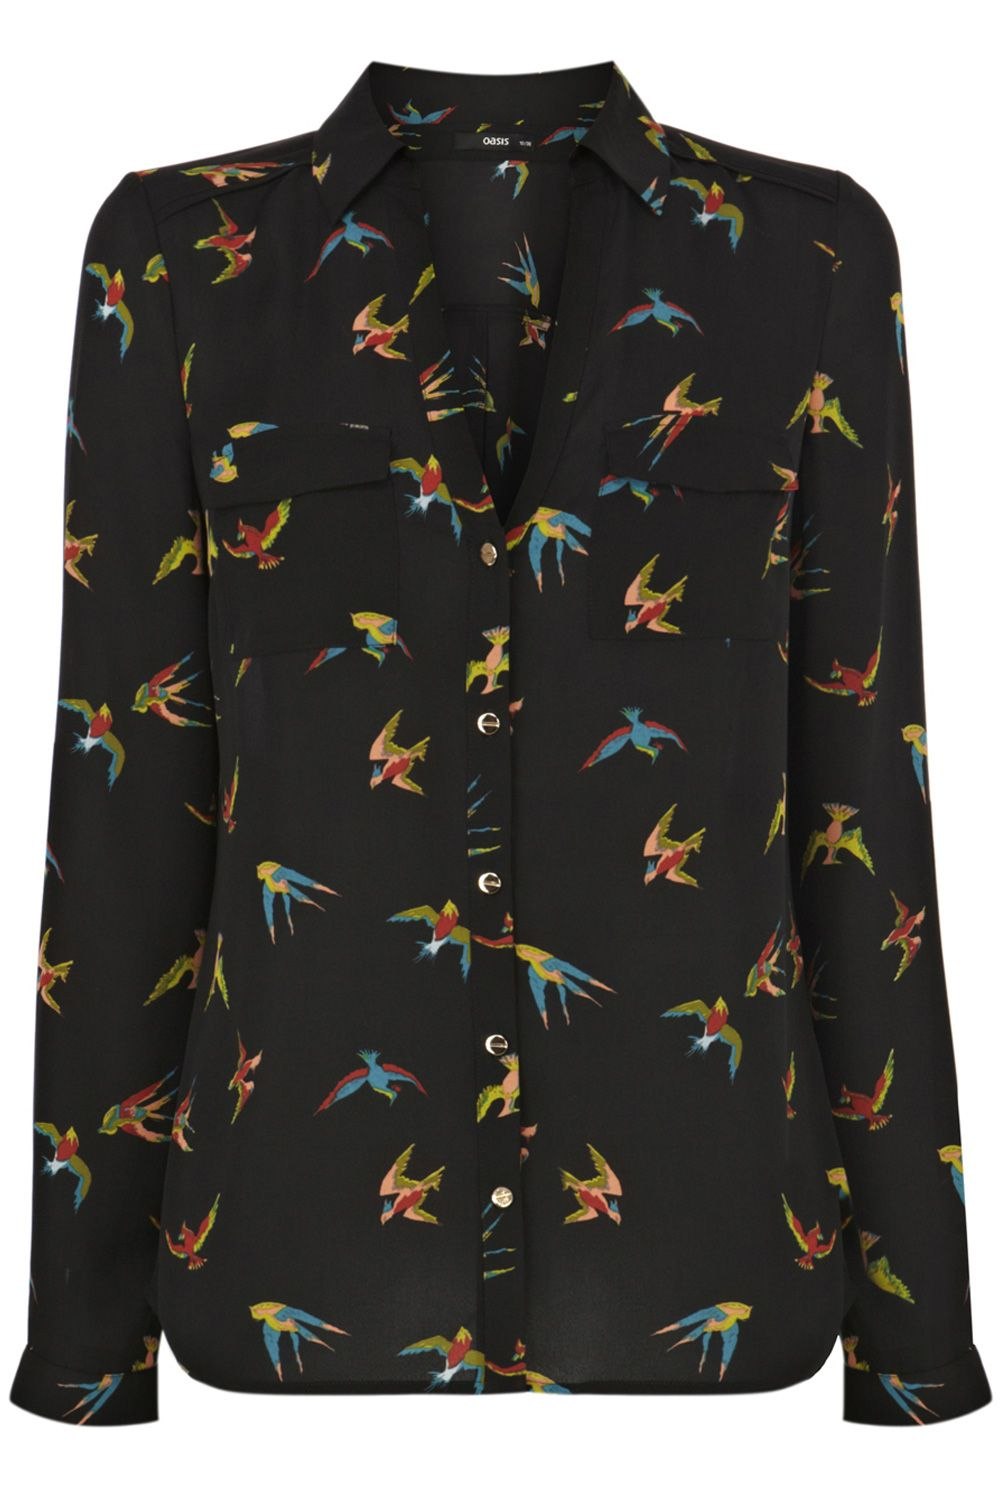 Tropical bird shirt